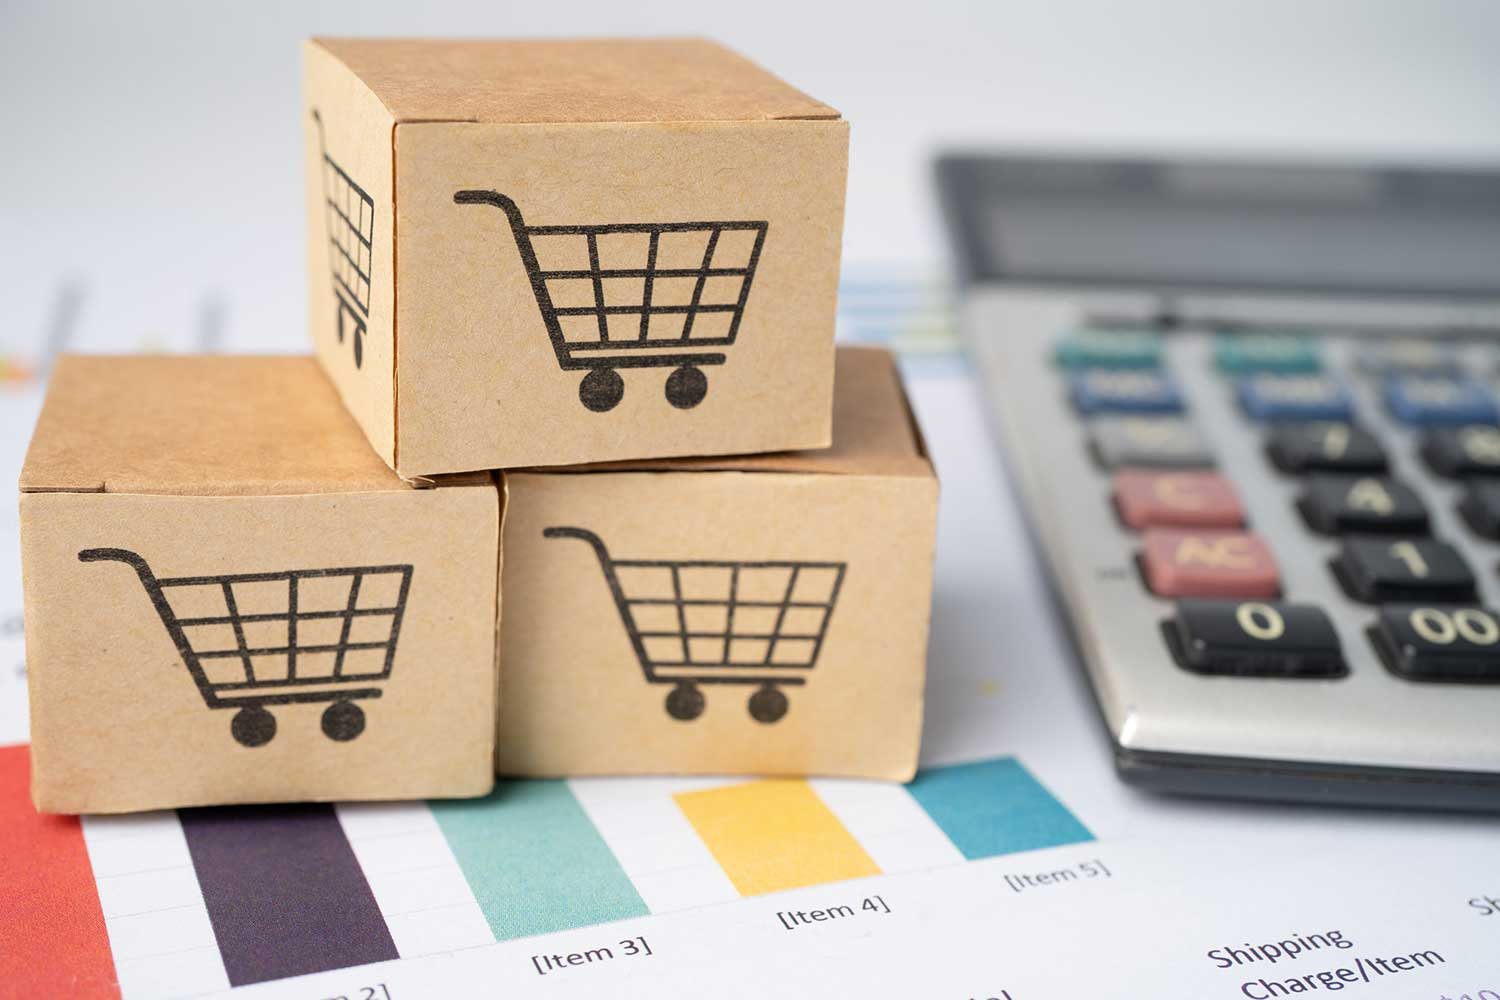 Product Sourcing for ecommerce